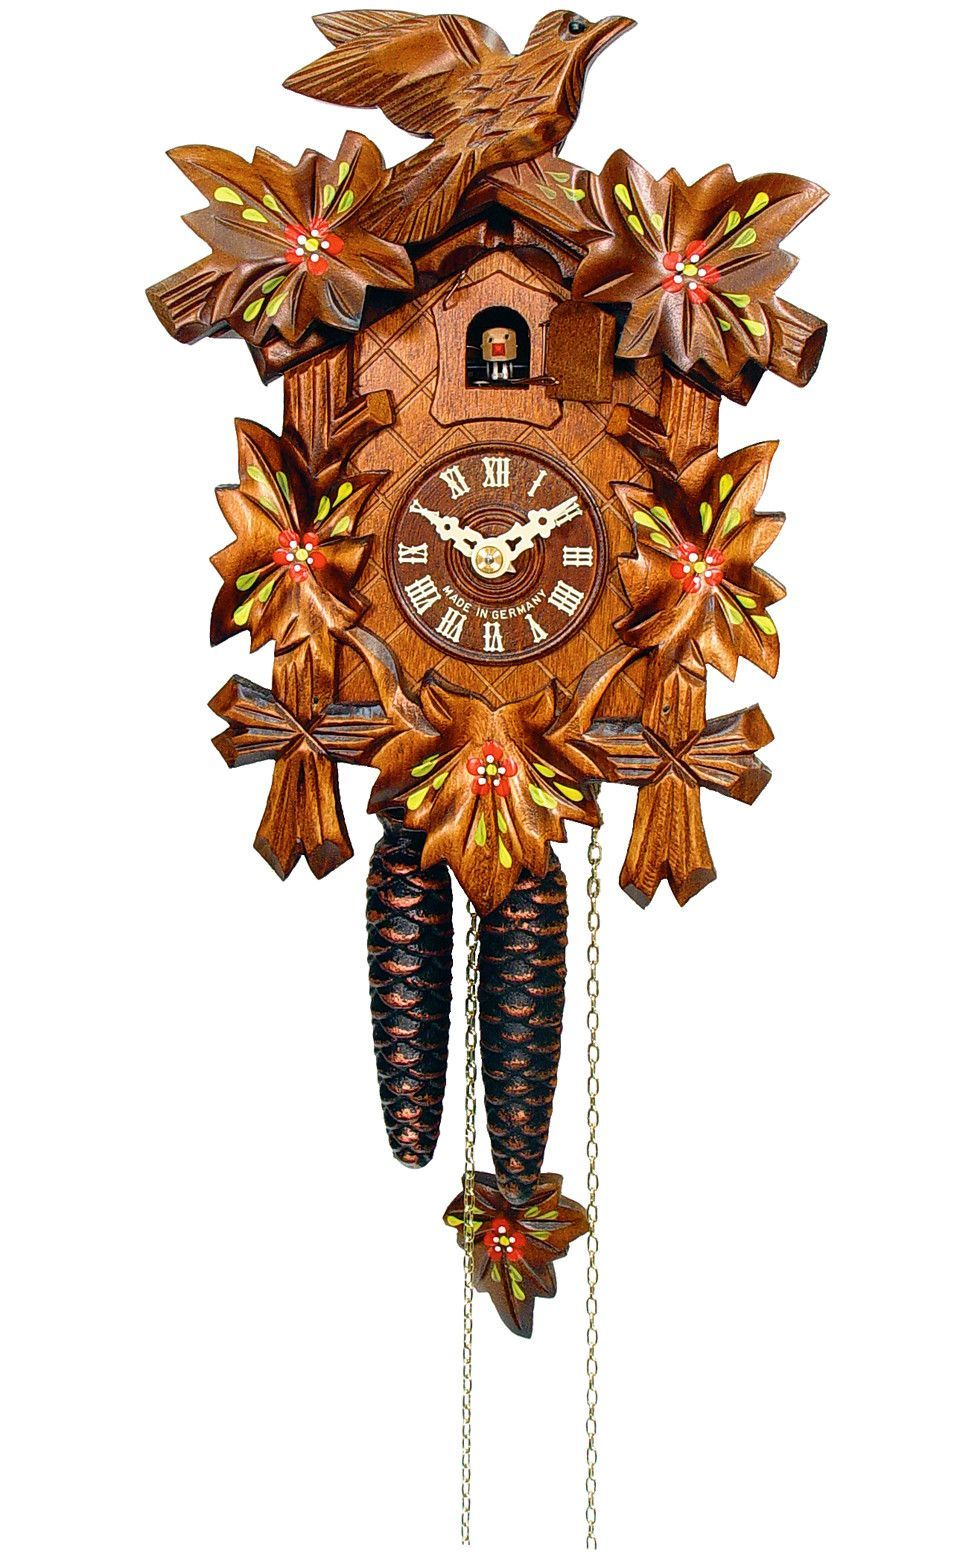 Engstler carved bird and leaves weight driven cuckoo clock 1 day engstler carved bird and leaves weight driven cuckoo clock 1 day 522 6 amipublicfo Images